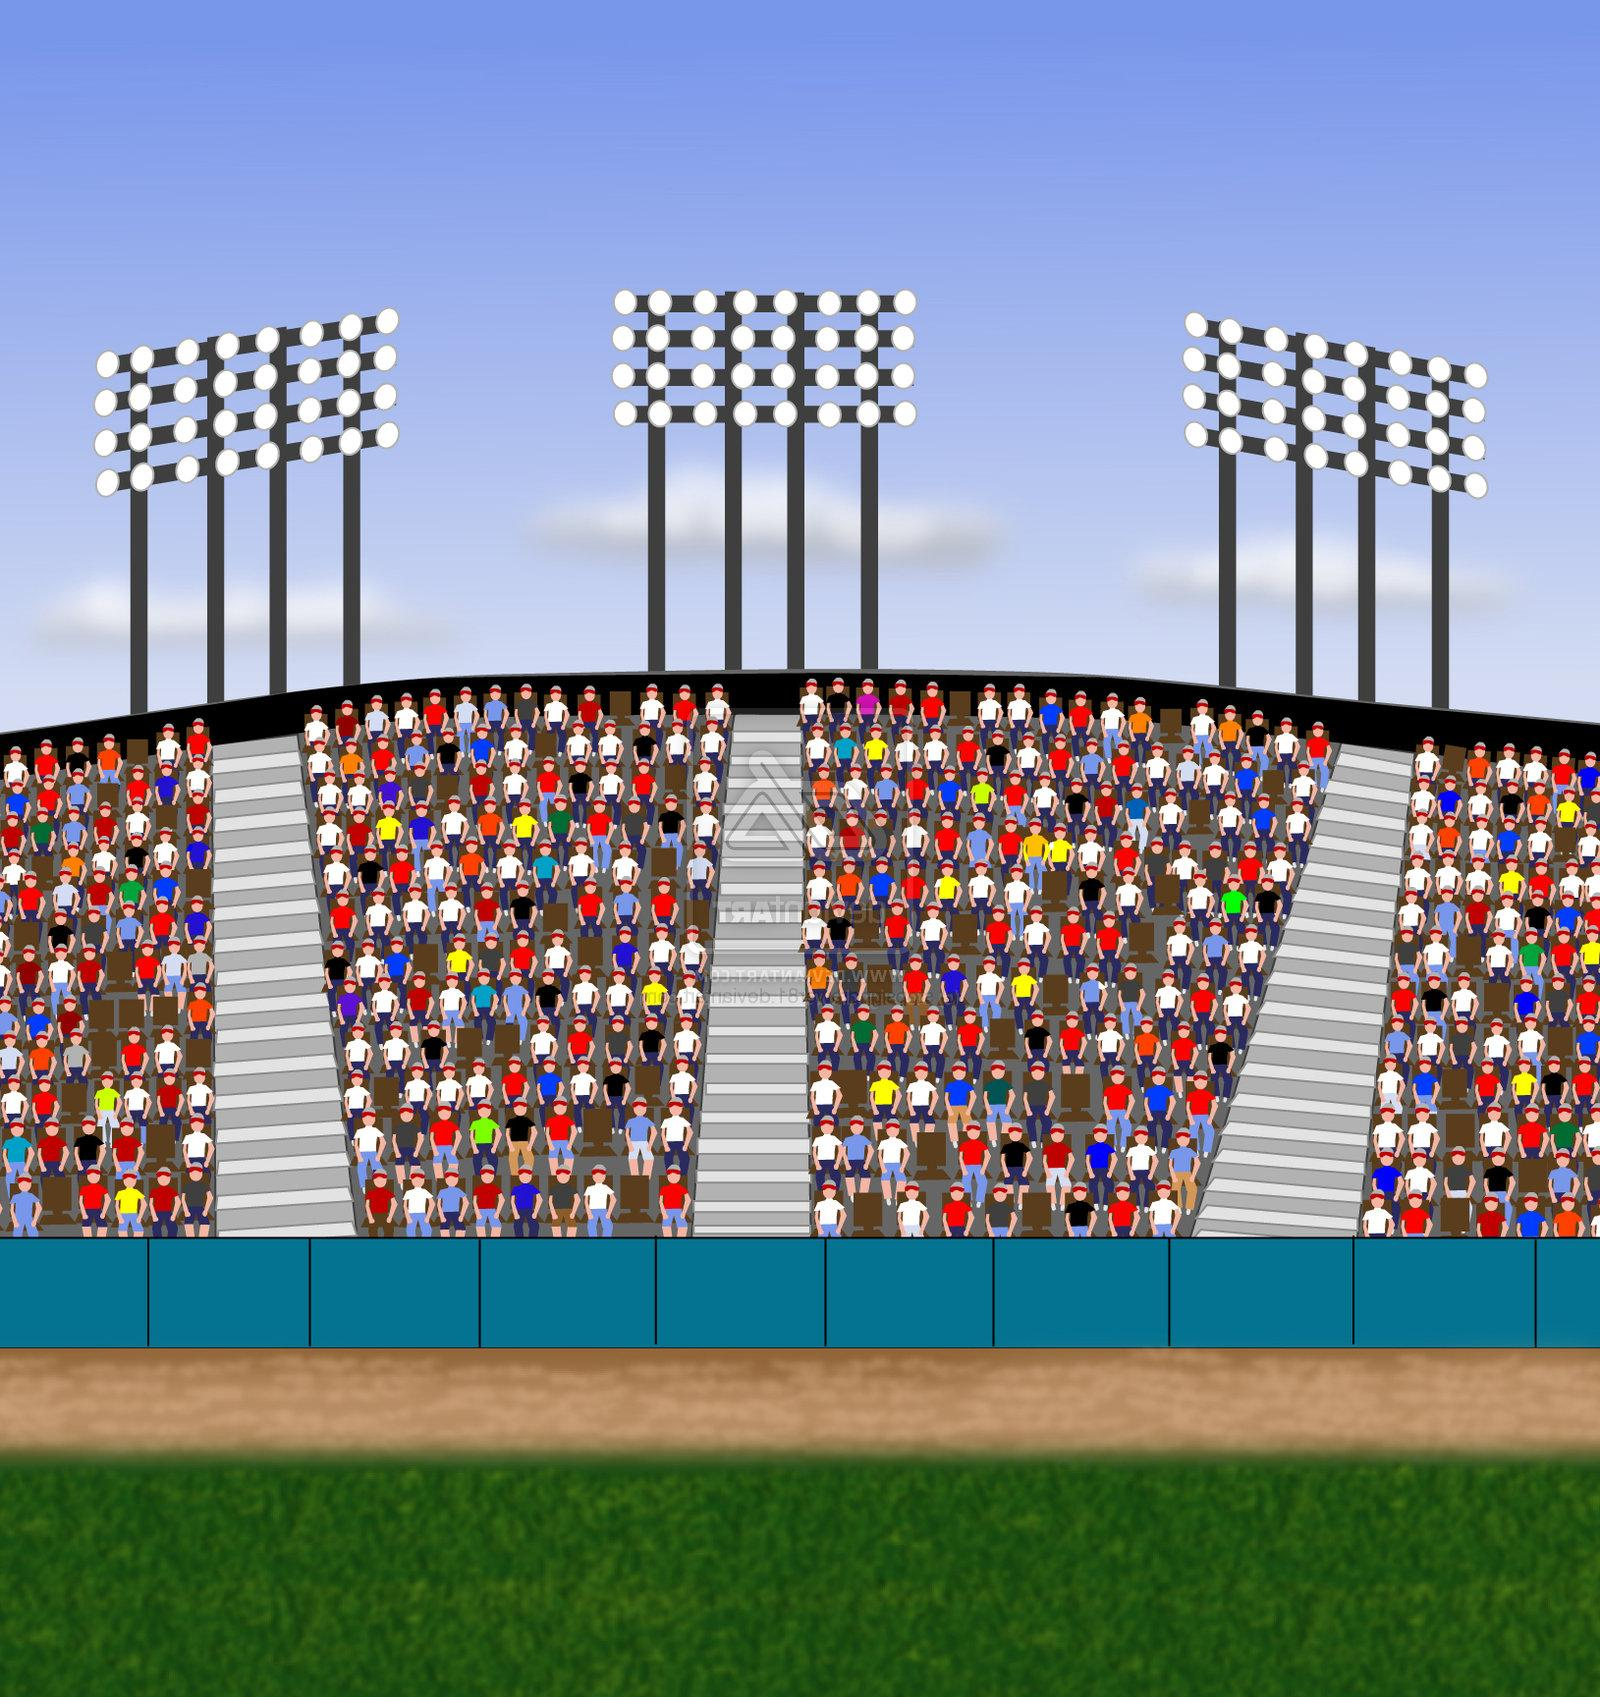 Best HD Baseball Crowd Clip Art Design » Free Vector Art.